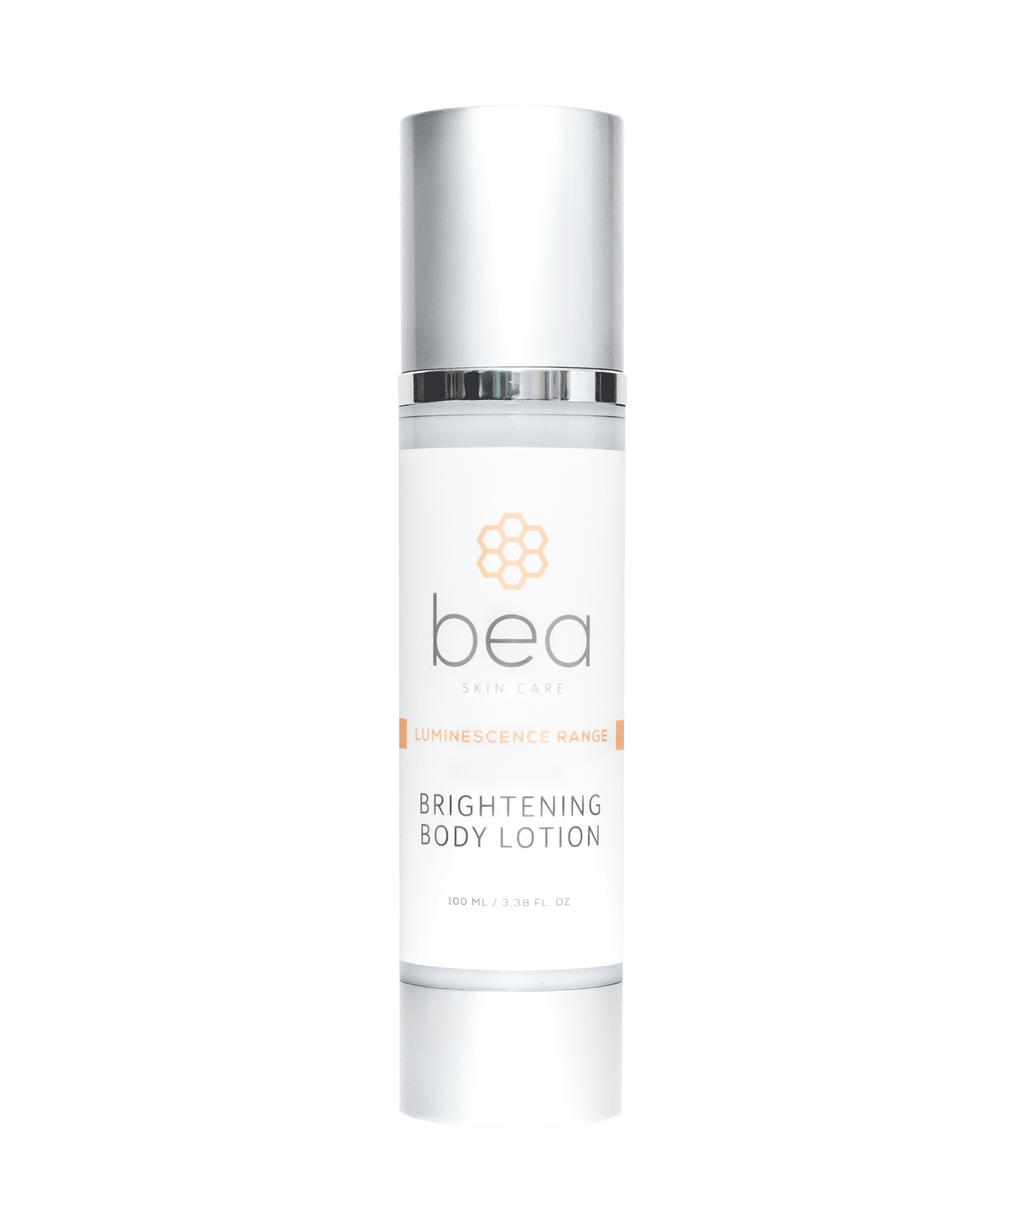 Brightening Body Lotion - 100 ml Body Lotion bea Skin Care